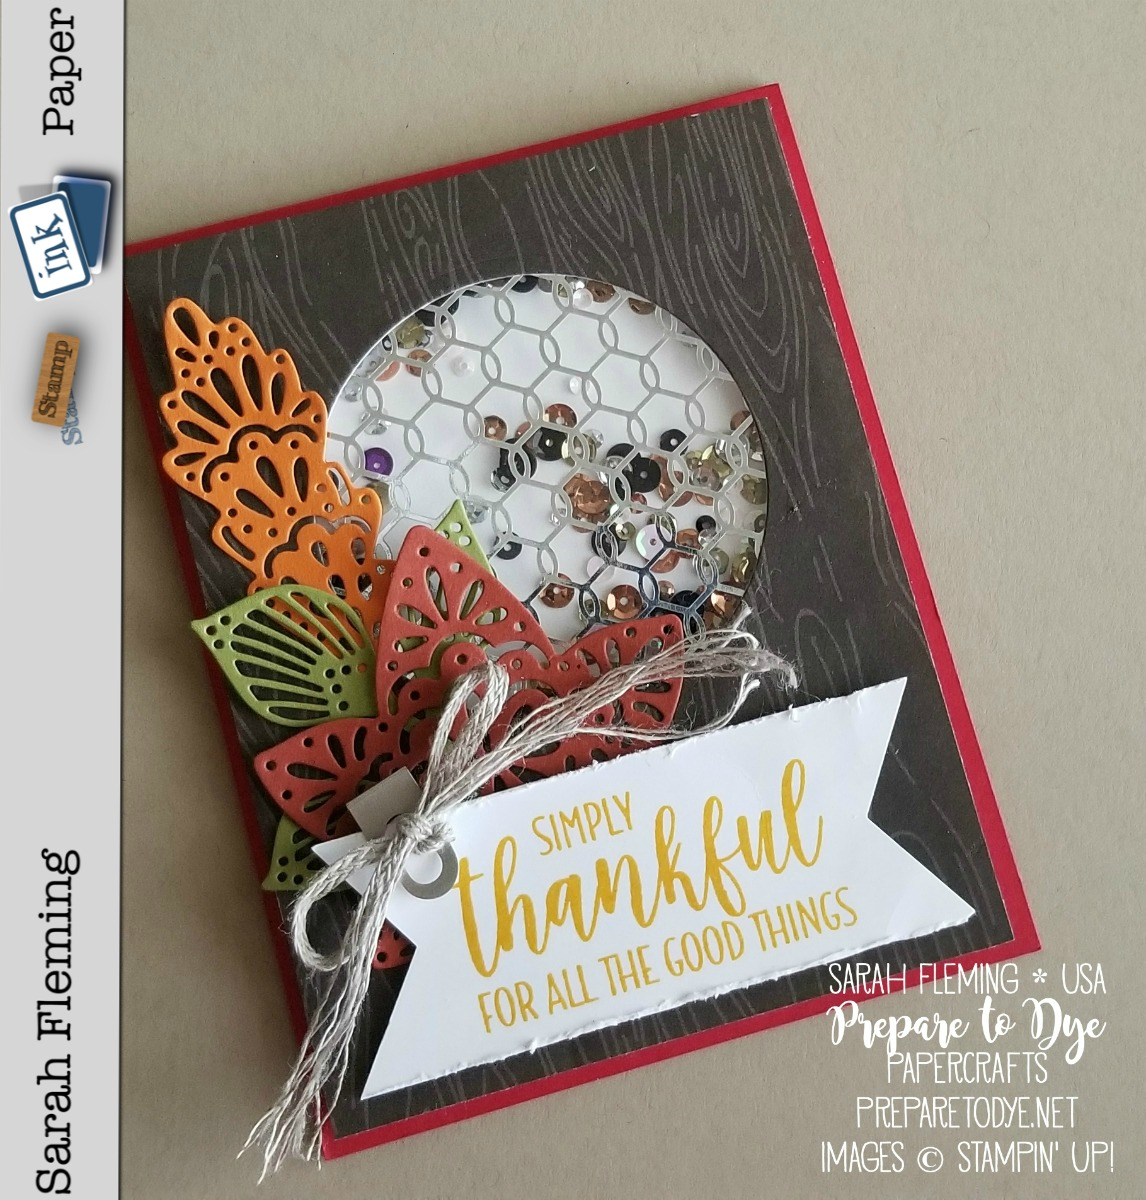 Stampin' Up! handmade fall thank you card using Country Home stamps, Country Lane paper, Detailed Leaves Thinlits - shaker card - Sarah Fleming - Prepare to Dye Papercrafts